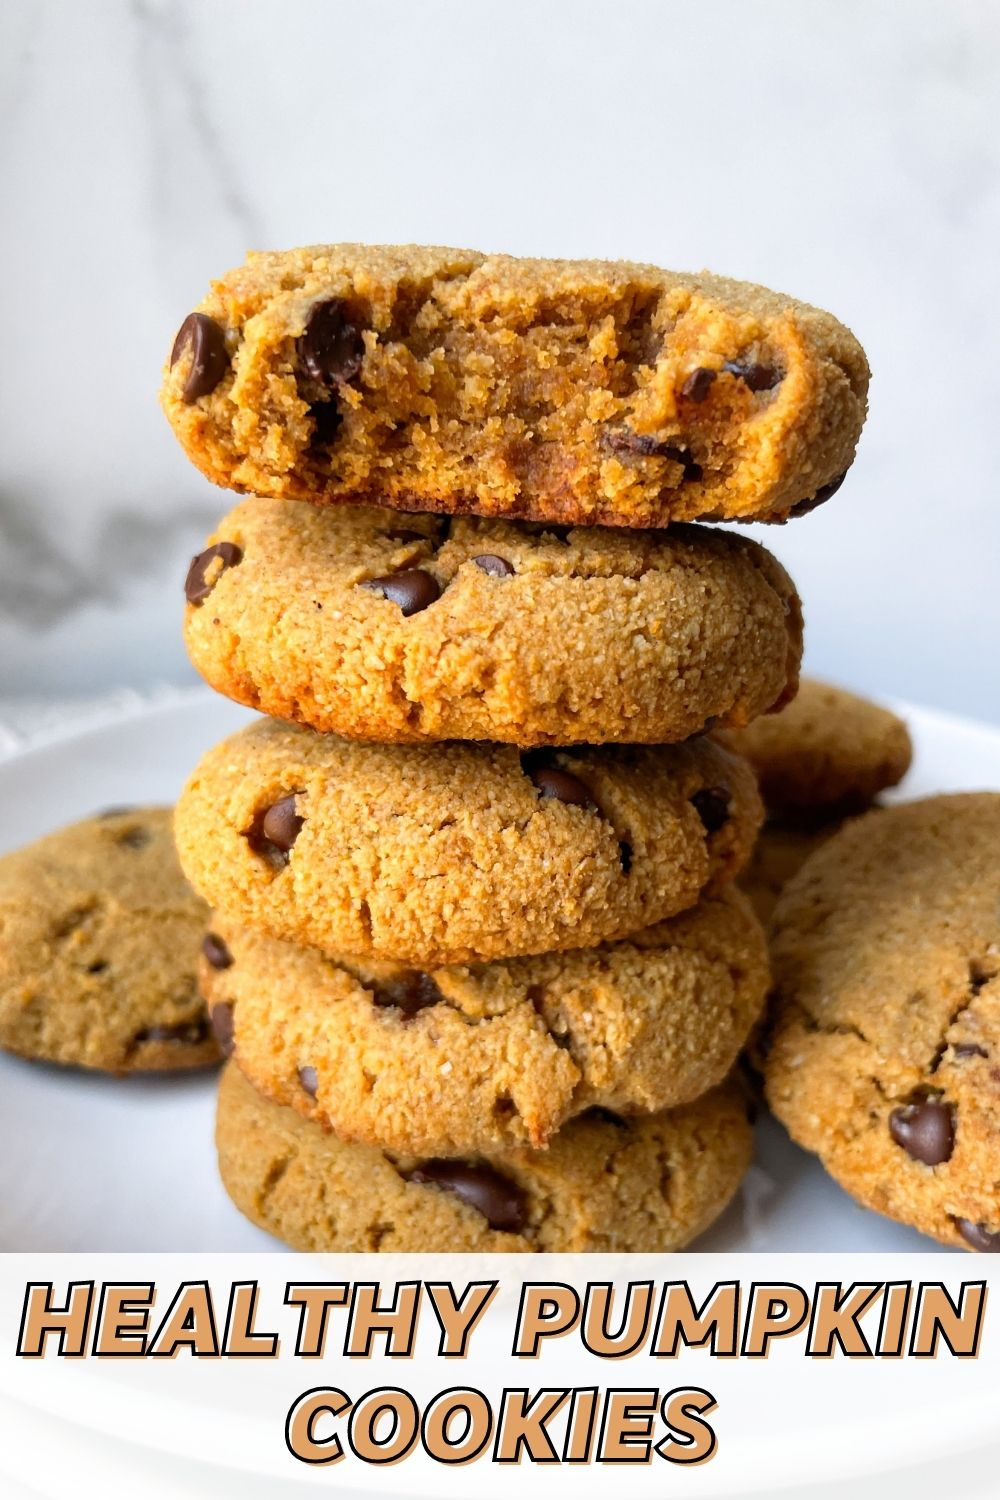 stacked cookies on white plates with text overlay